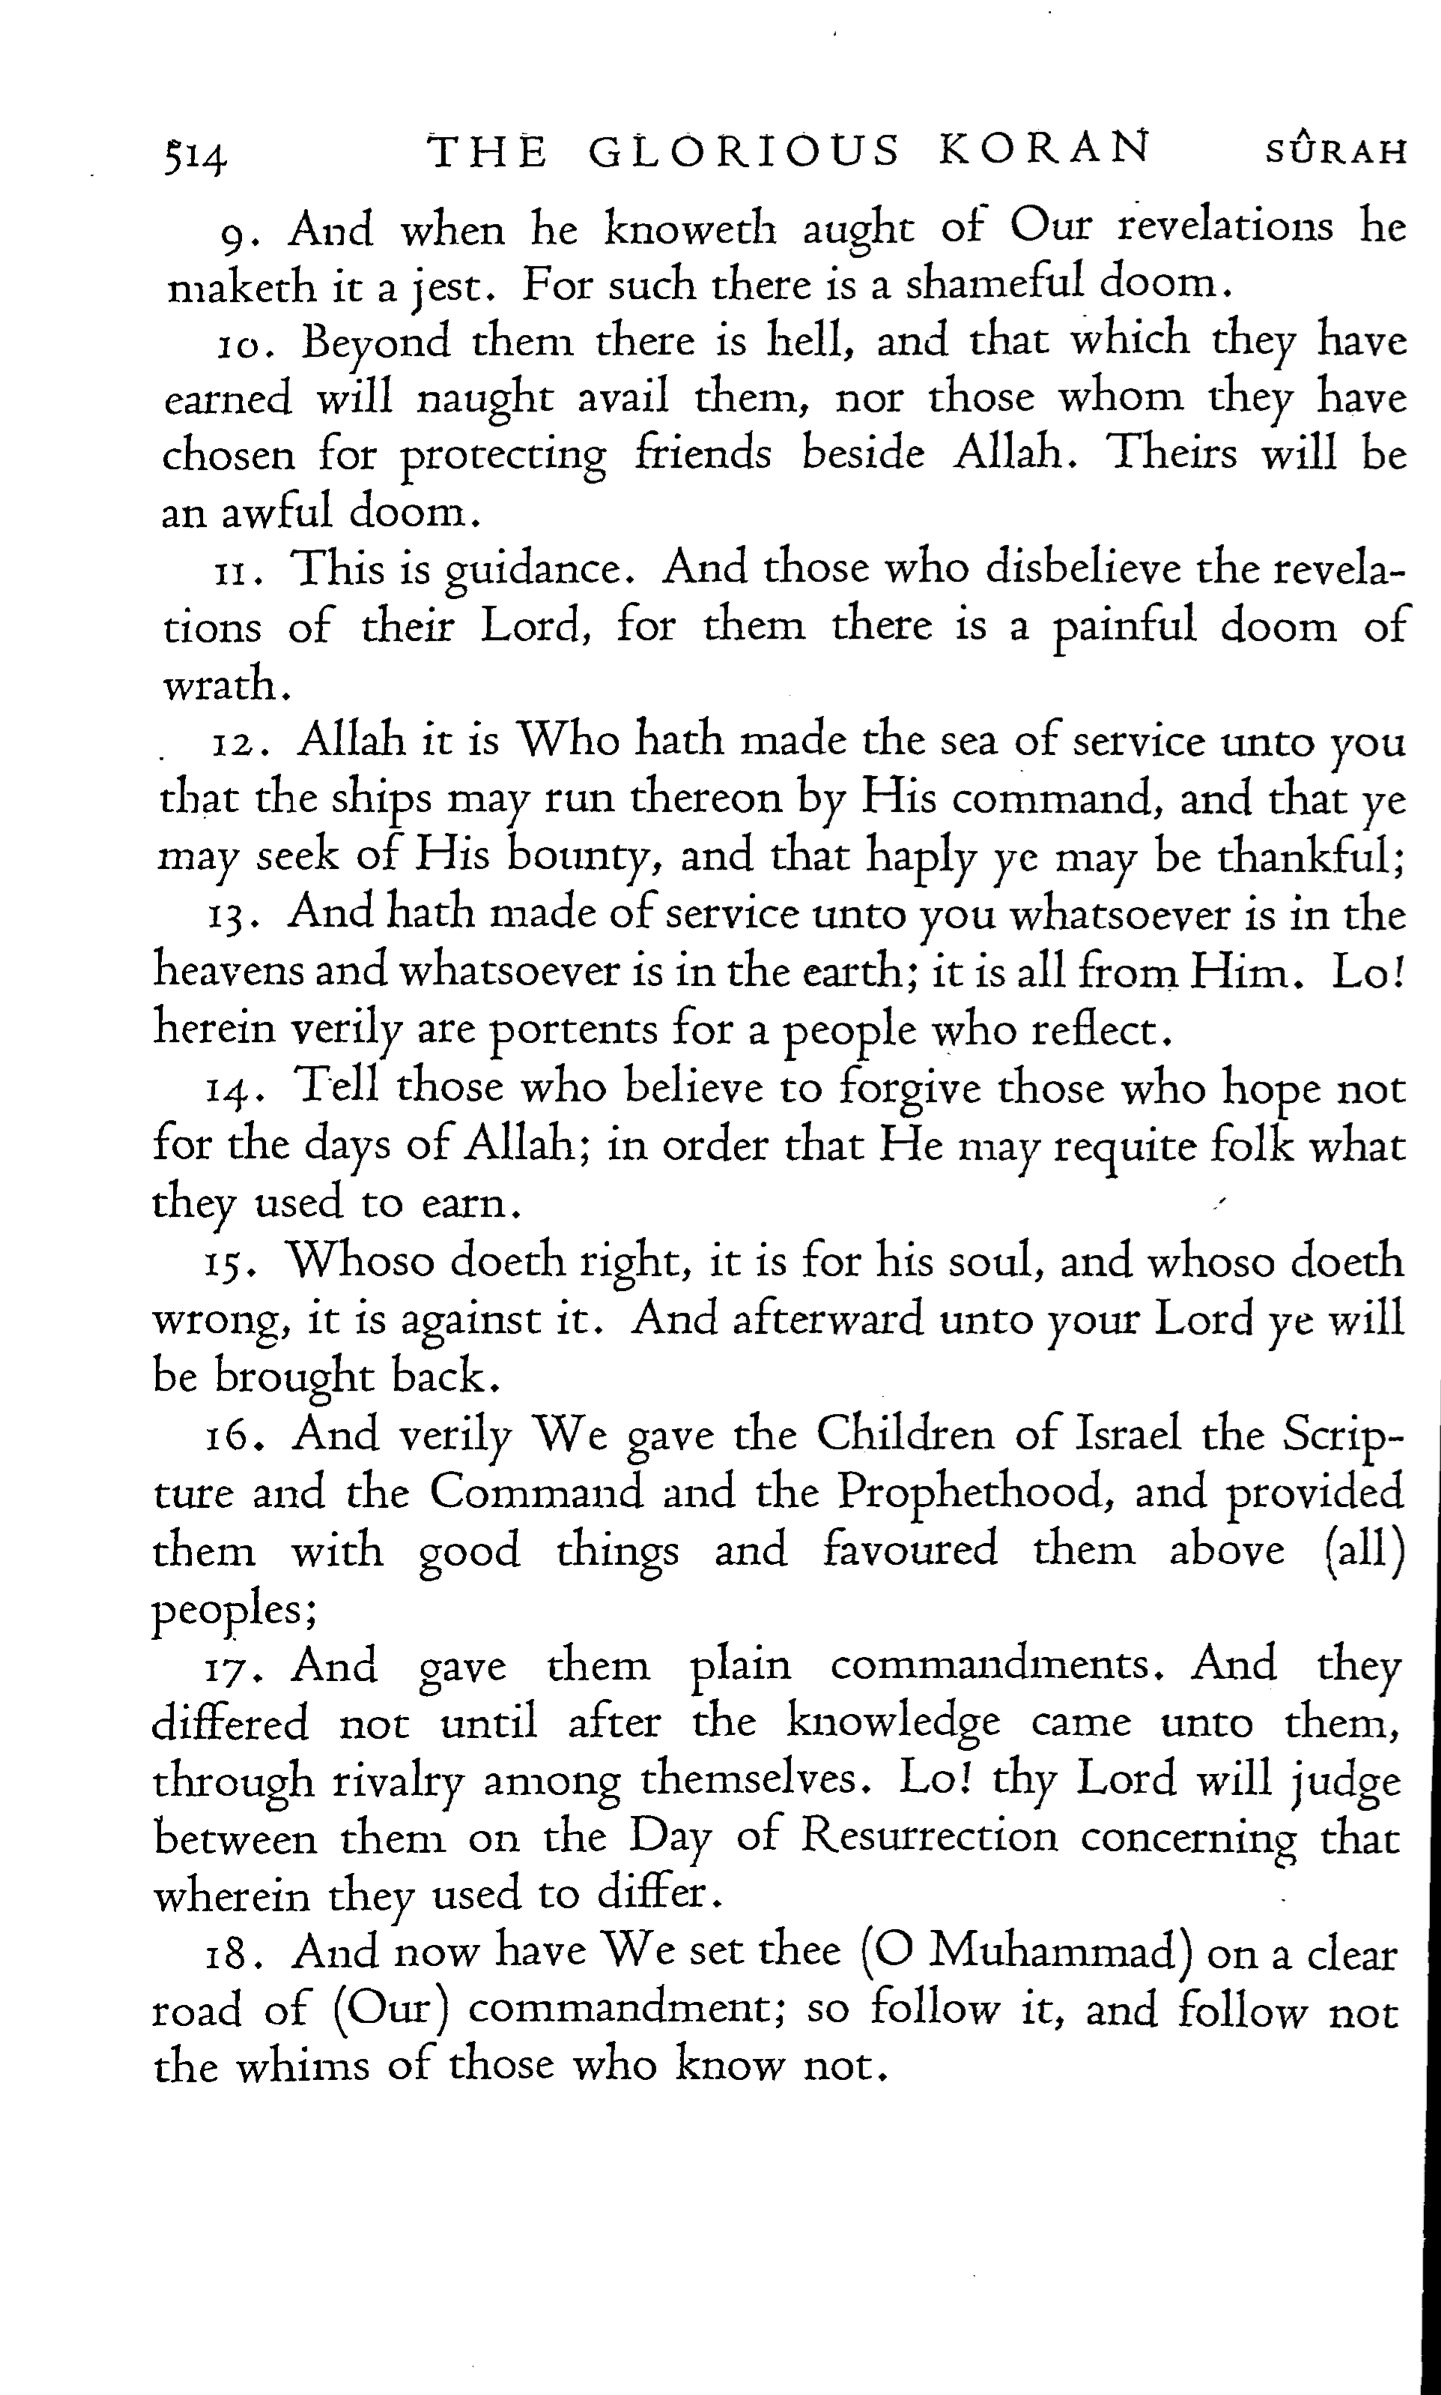 marmaduke pickthall quran translation (1930), page 520 | quran explorer, download and read now (pdf, html, ebook)